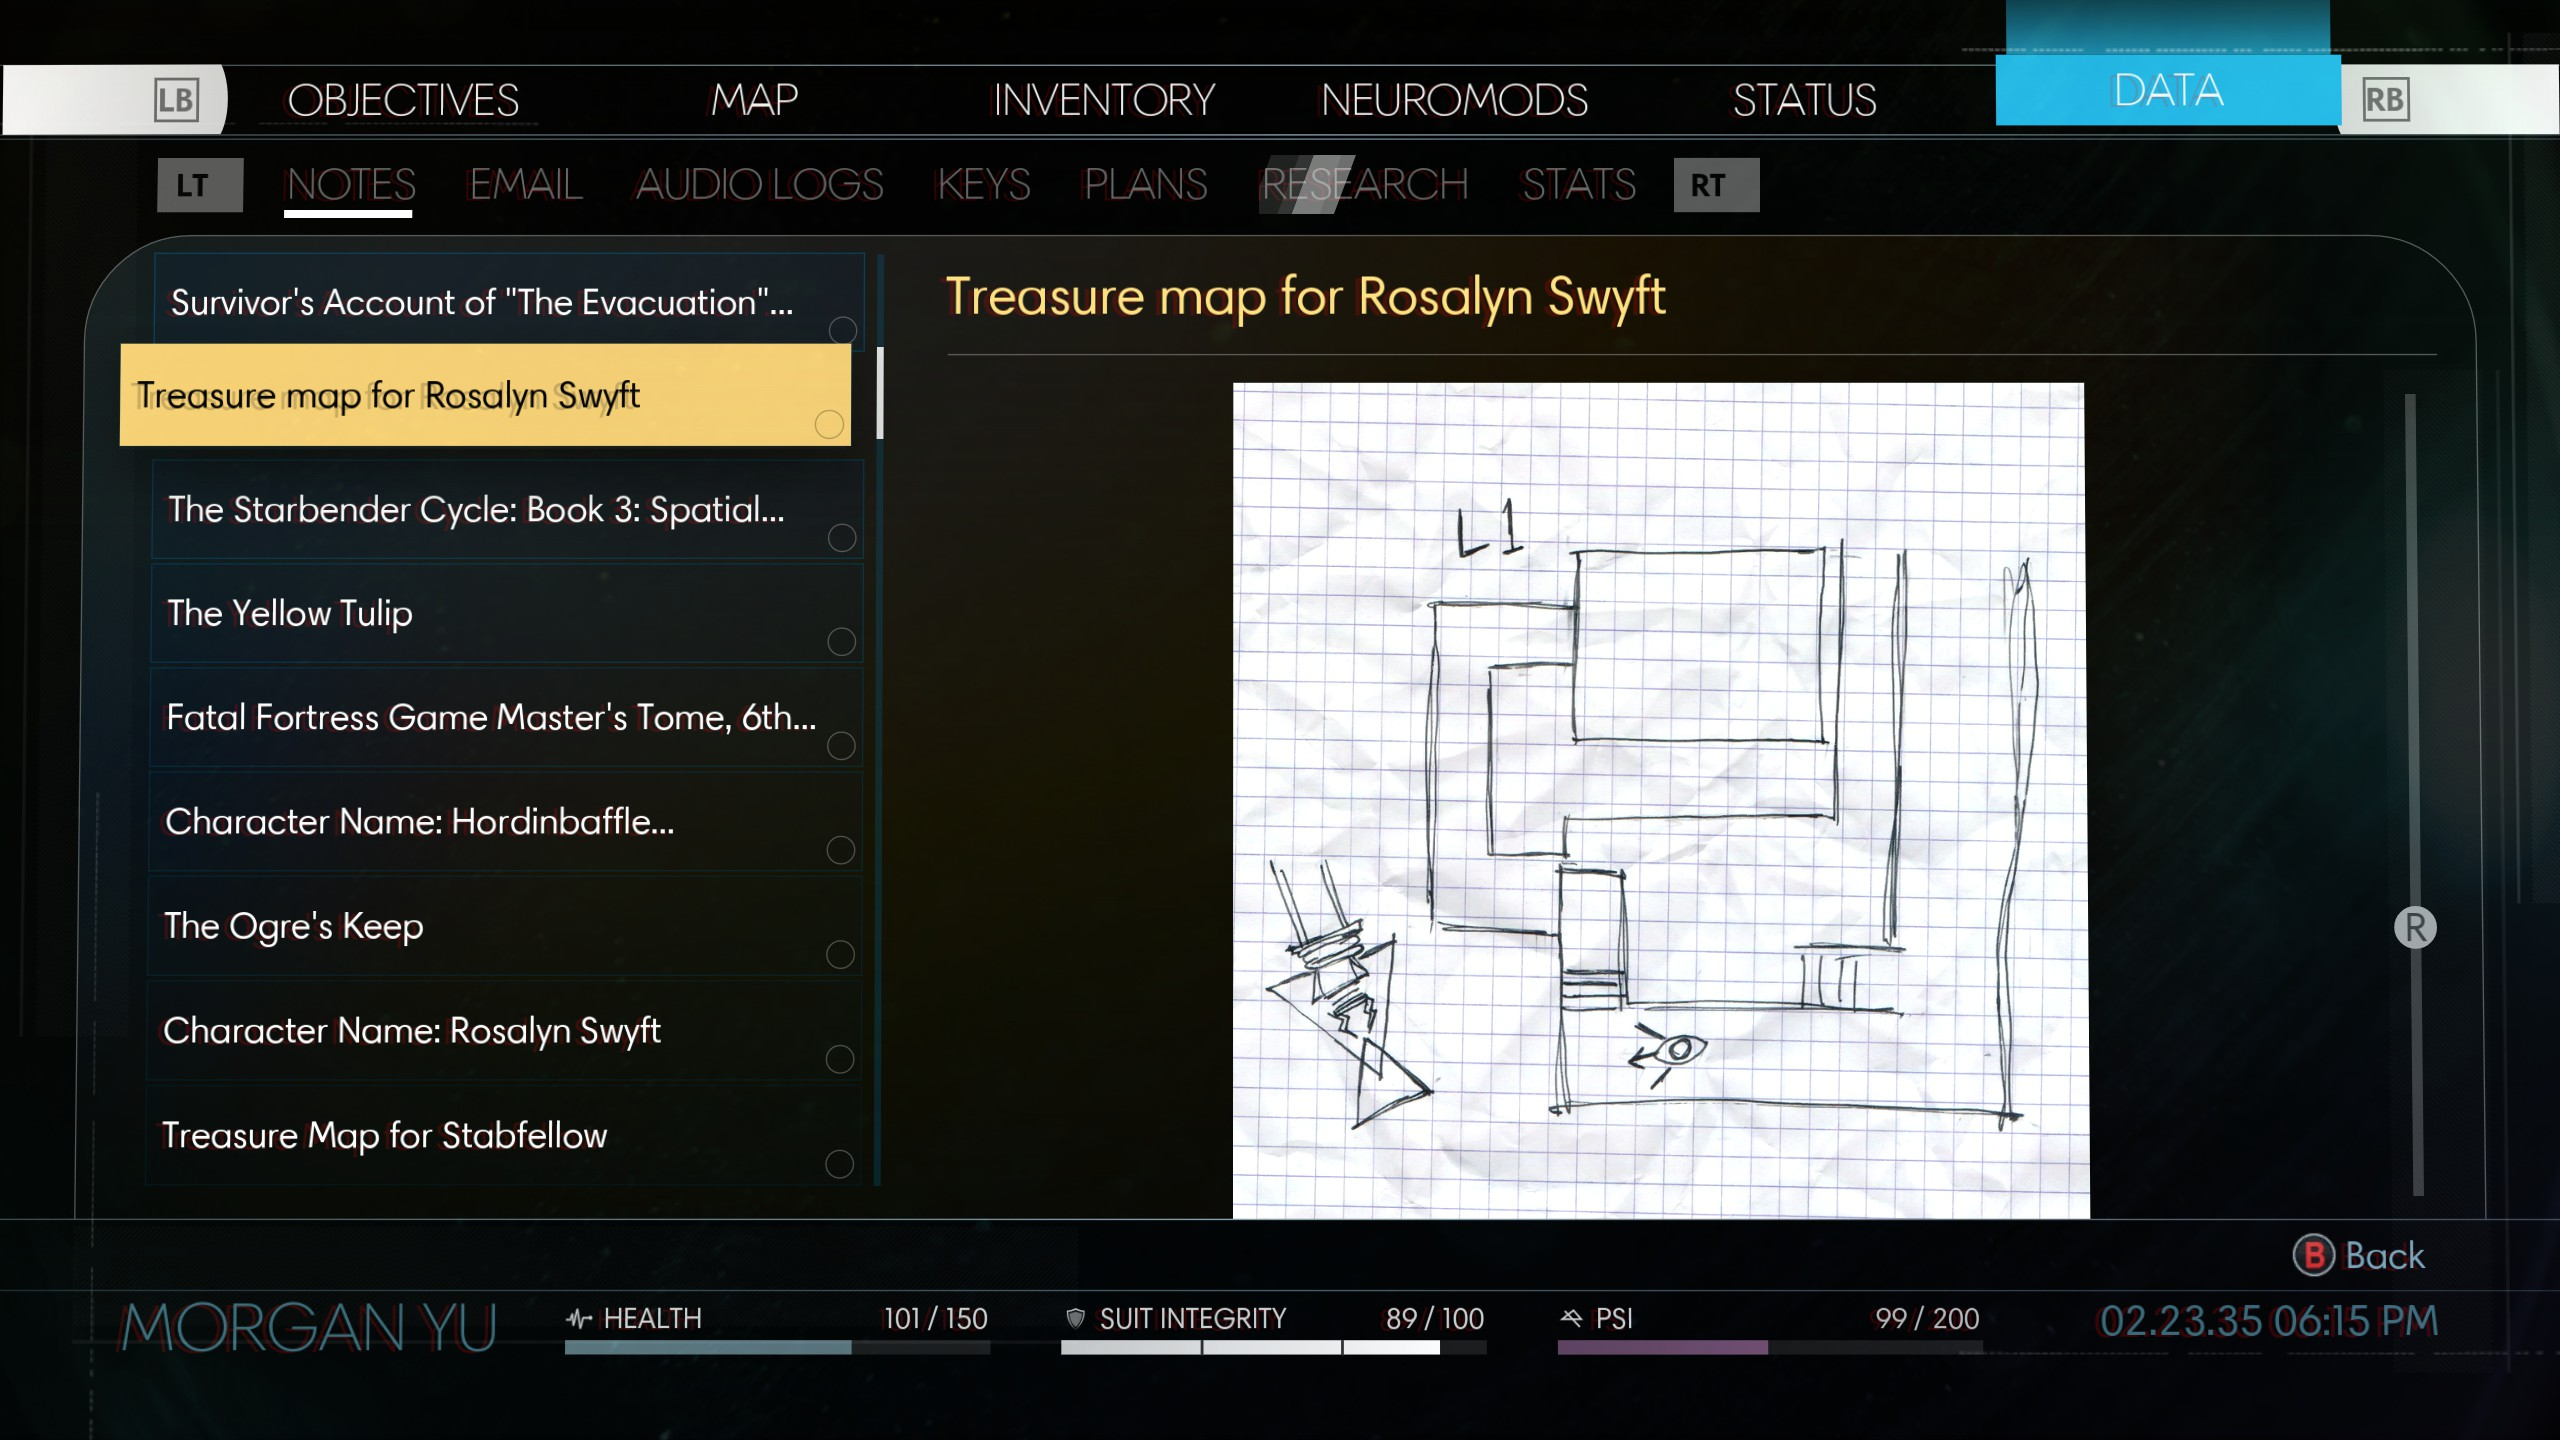 Emma Beatty's Treasure Map is on her and will say Rosalyn Swyft on it.